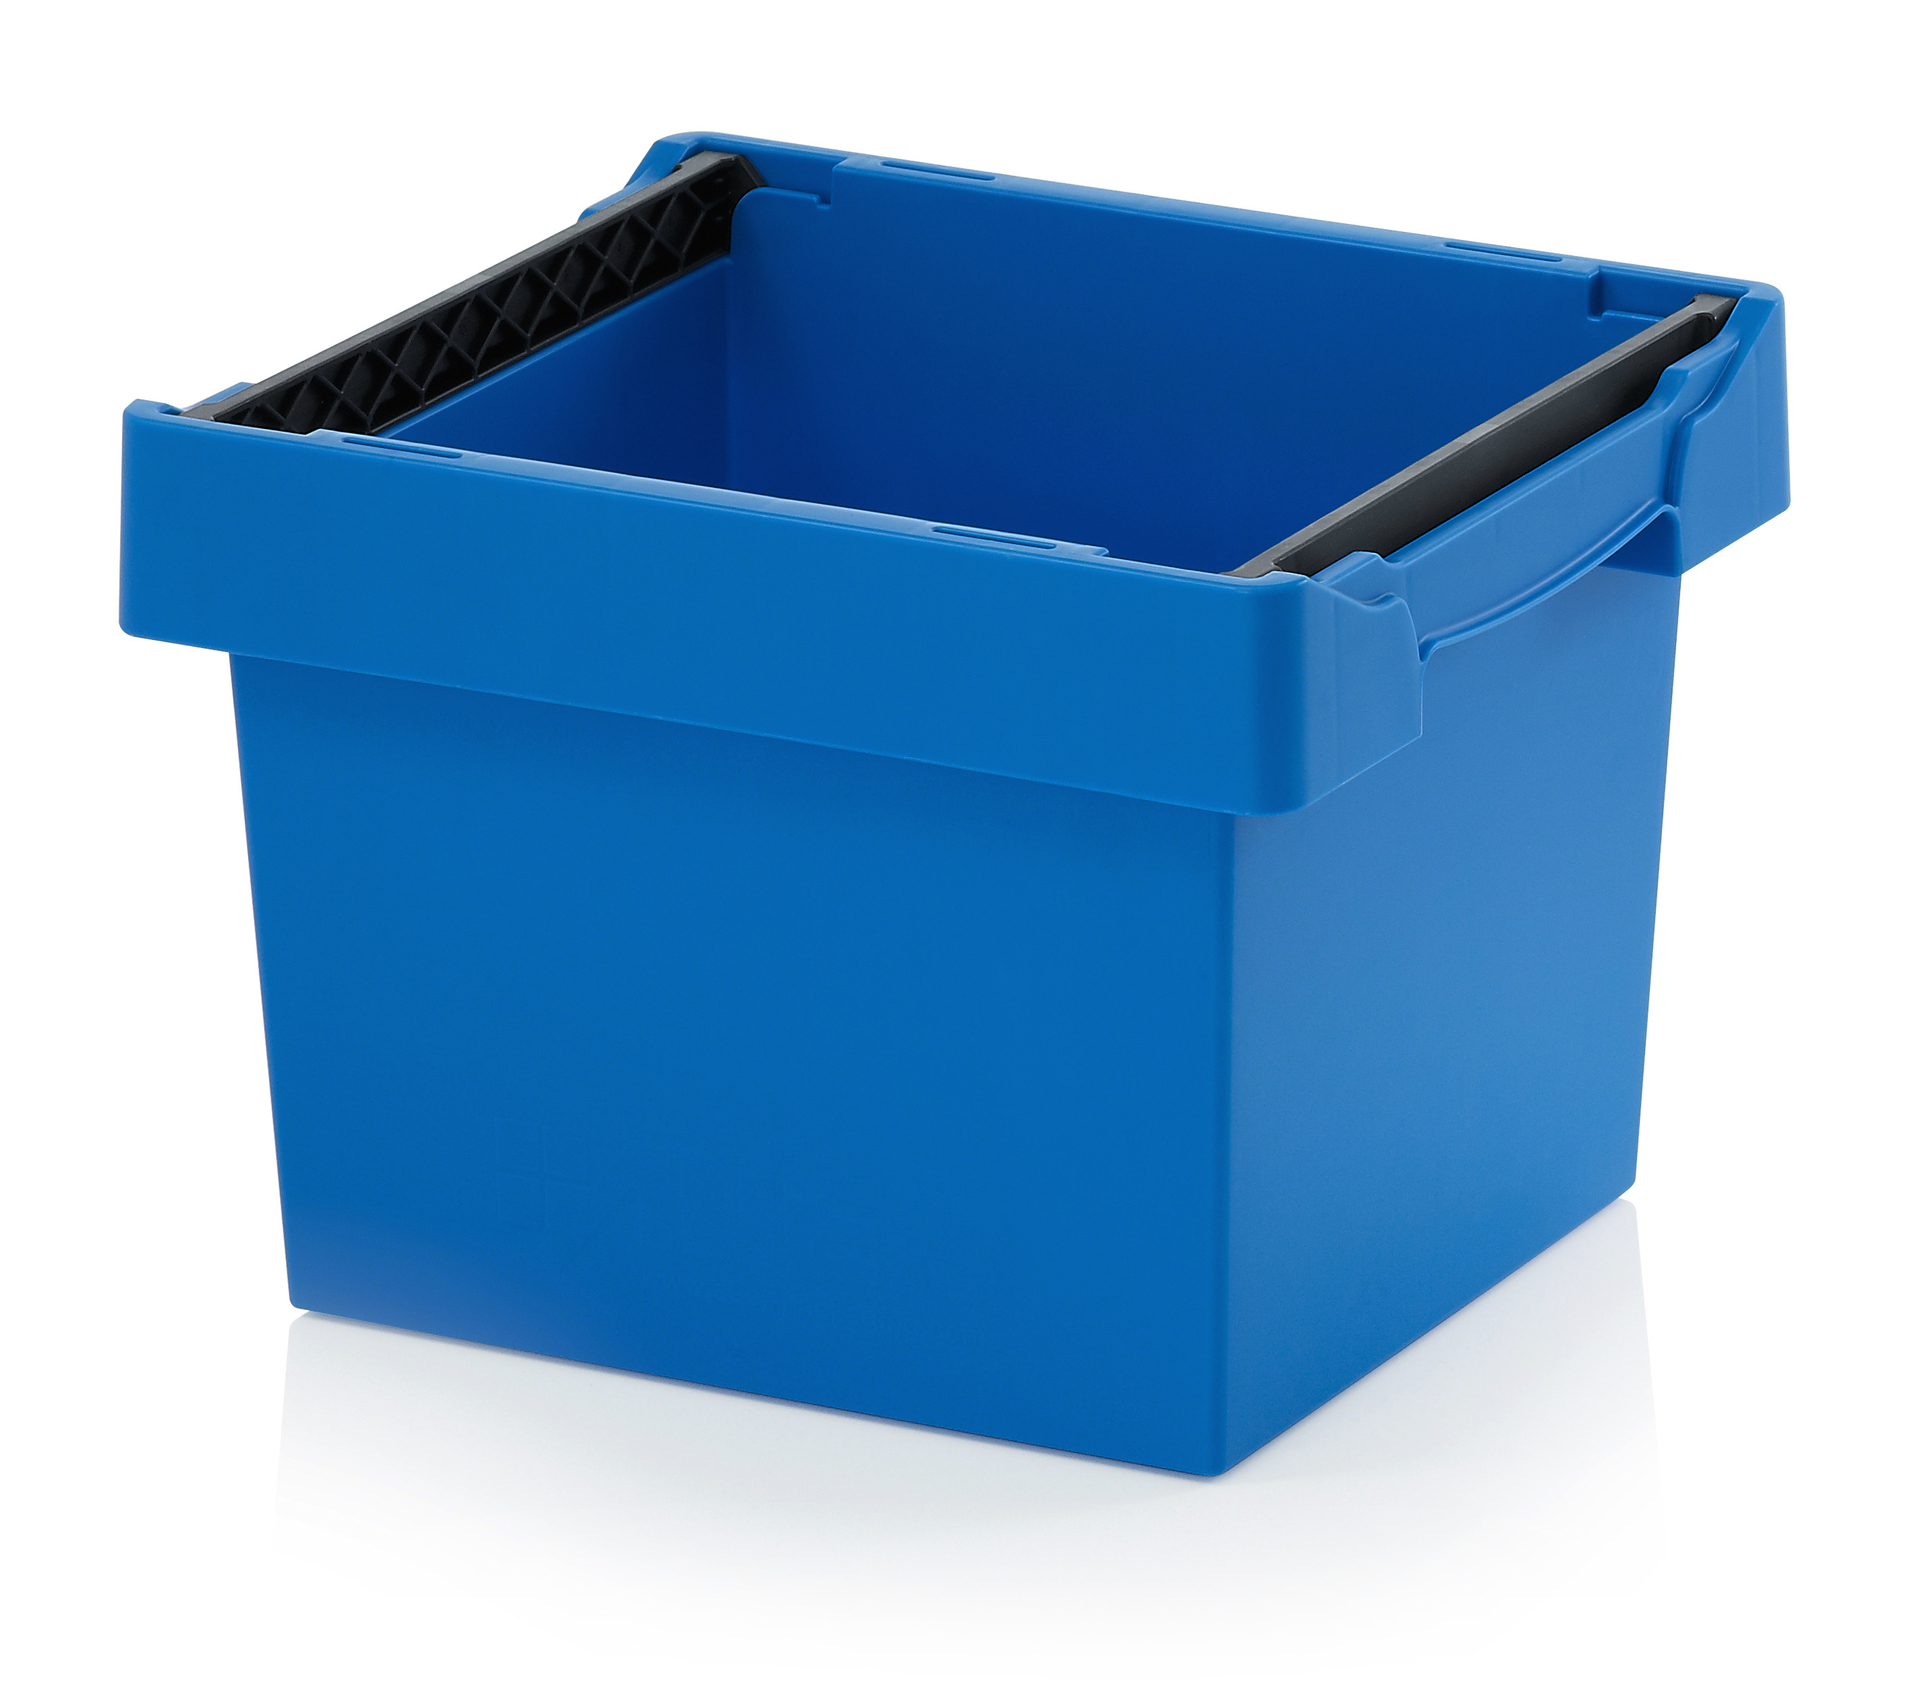 RC4270F_1 Reusable Containers - Plastic Mouldings Northern